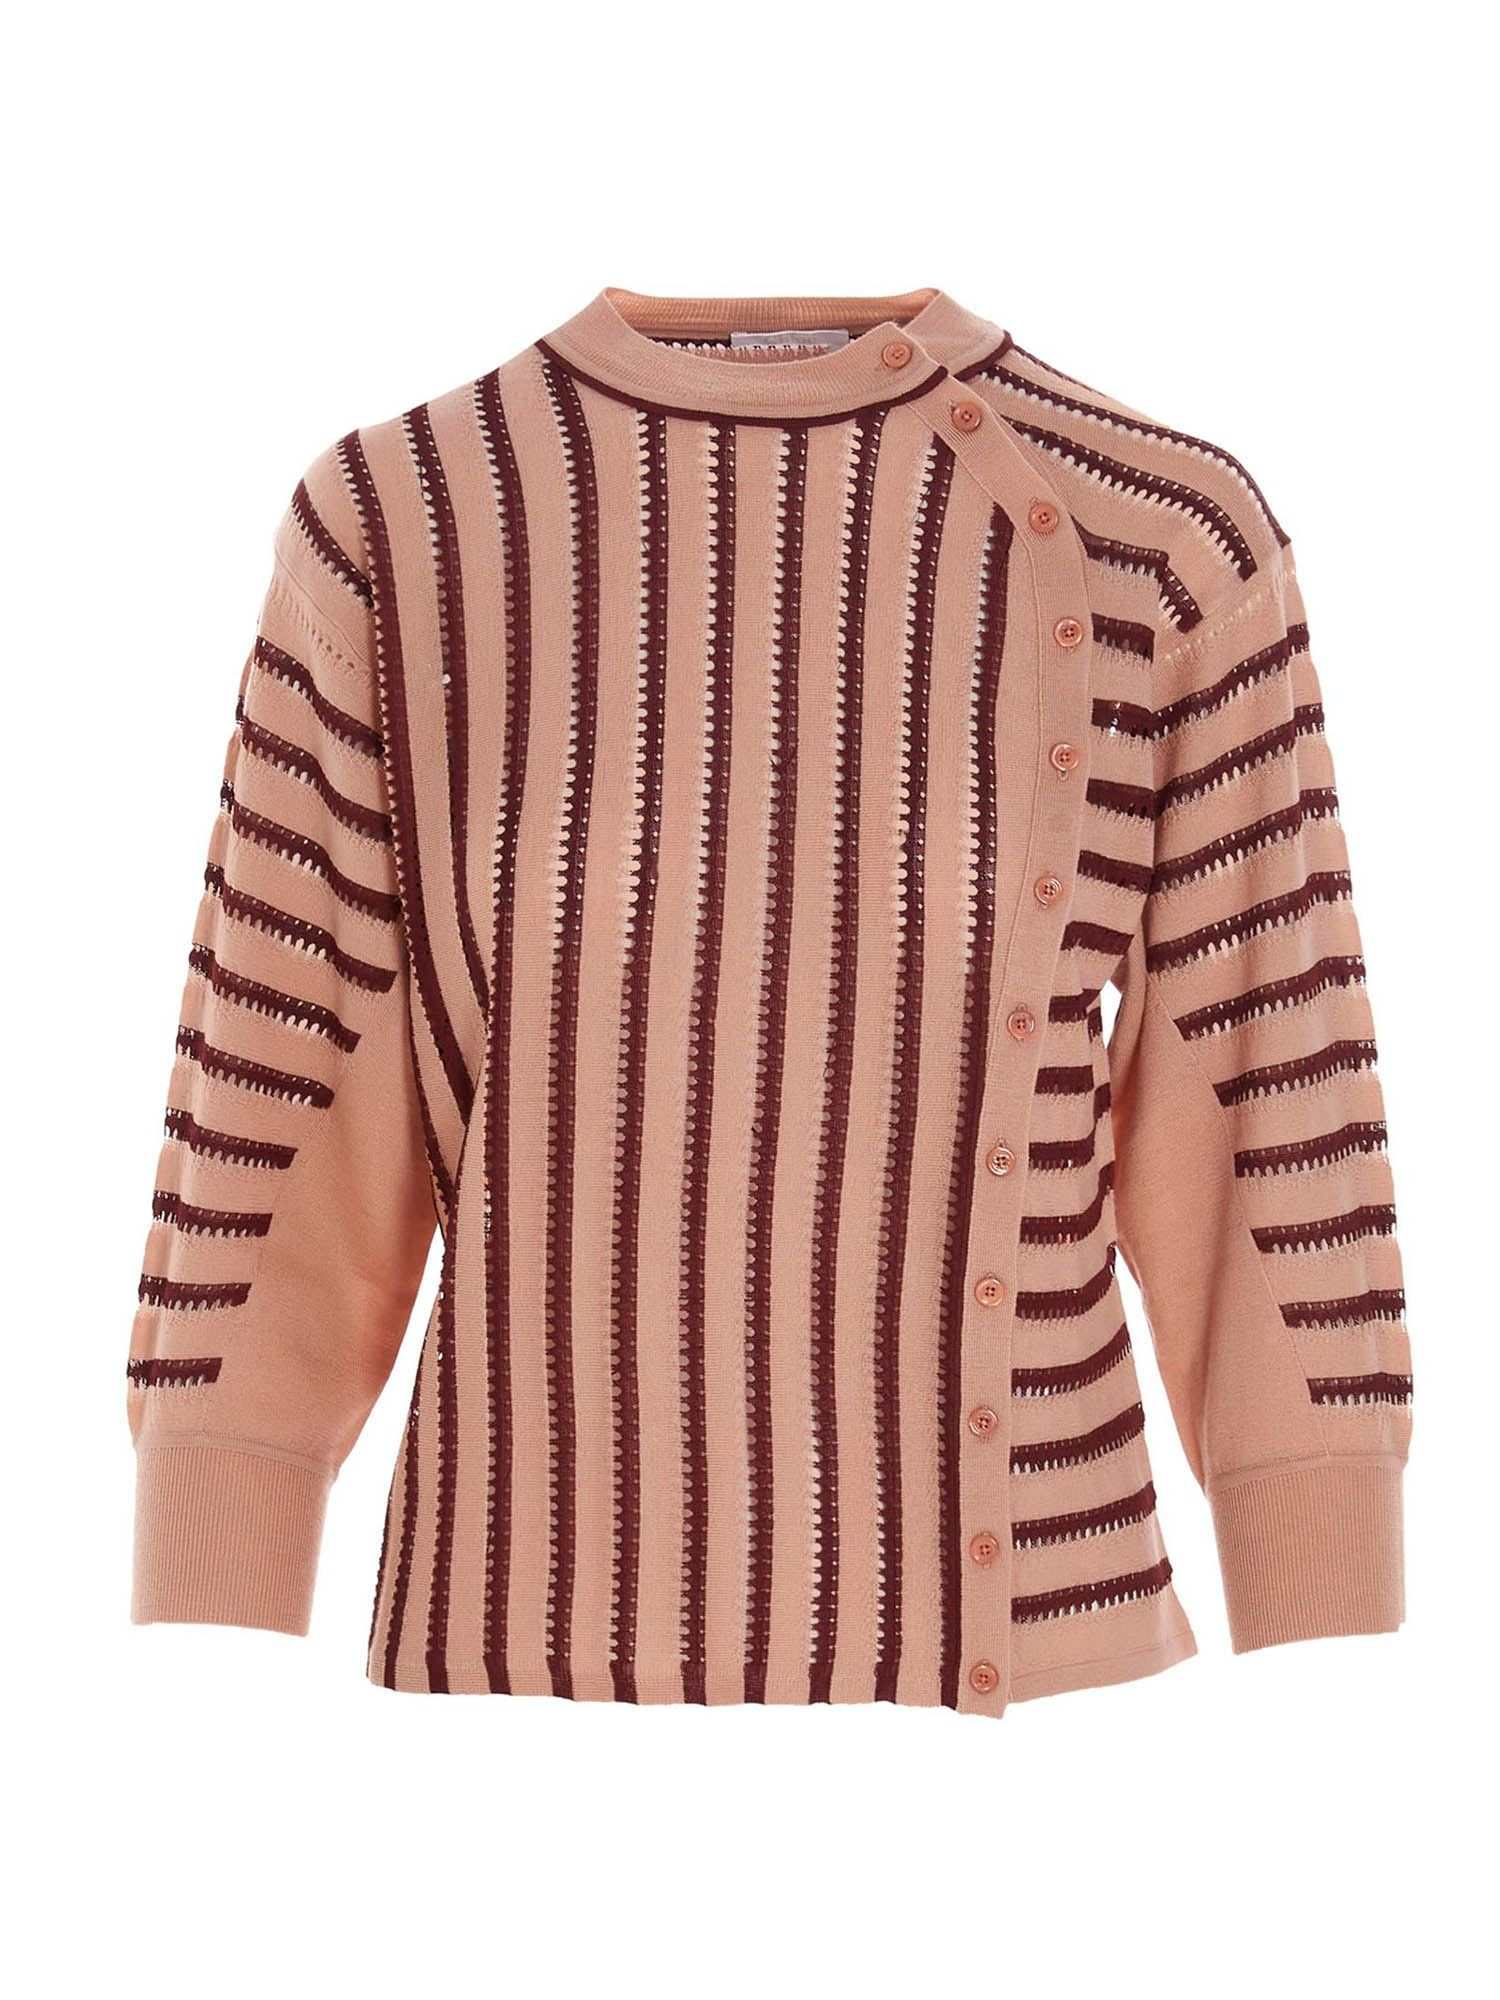 Chloé DRILLED CREWNECK SWEATER IN PINK